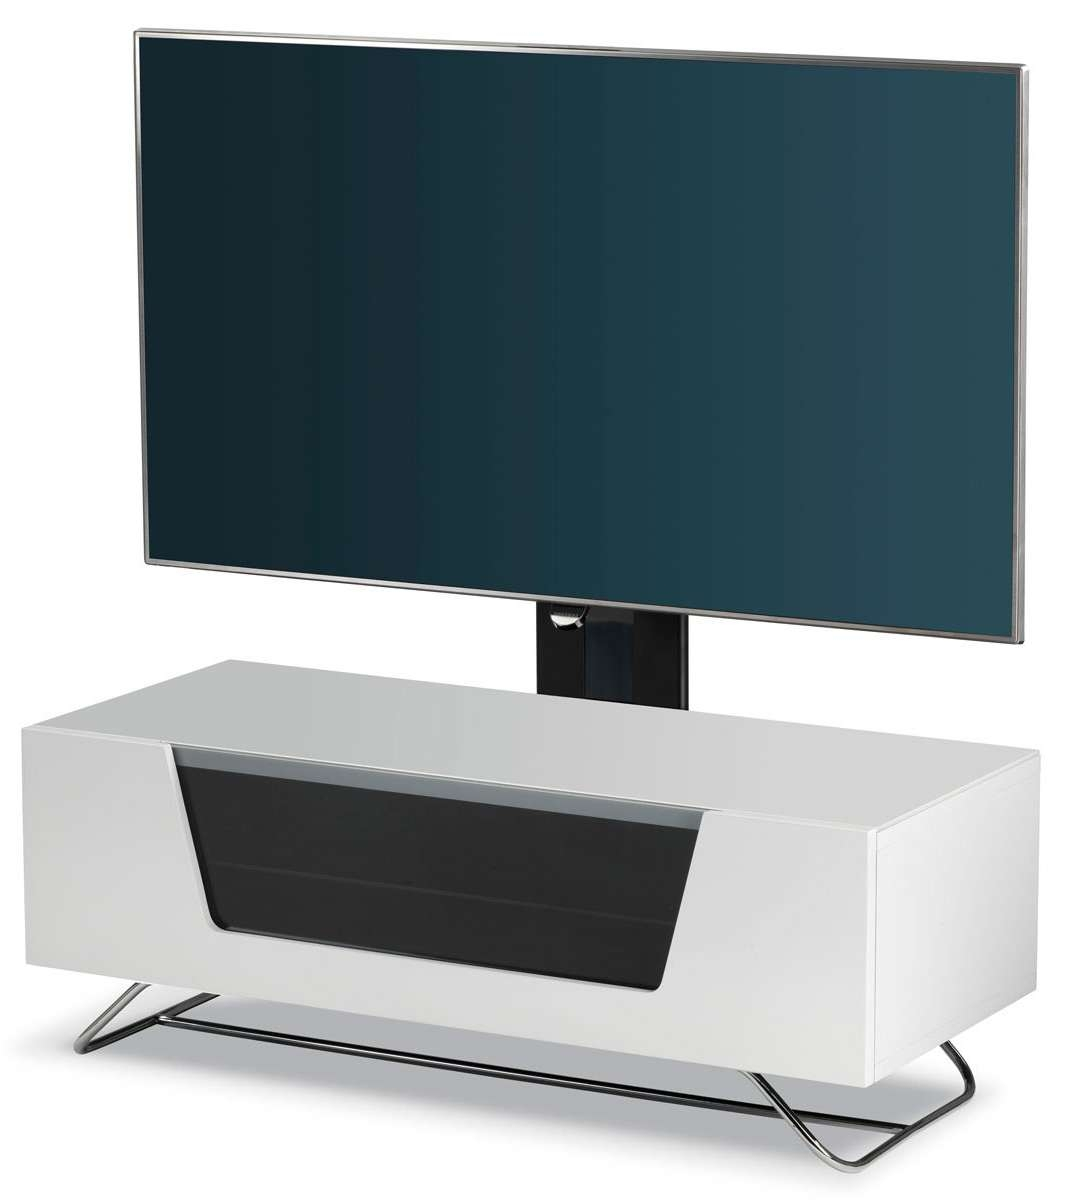 Alphason Chromium High Gloss Cantilever Tv Stand Unit Remote Regarding White Cantilever Tv Stands (View 4 of 20)